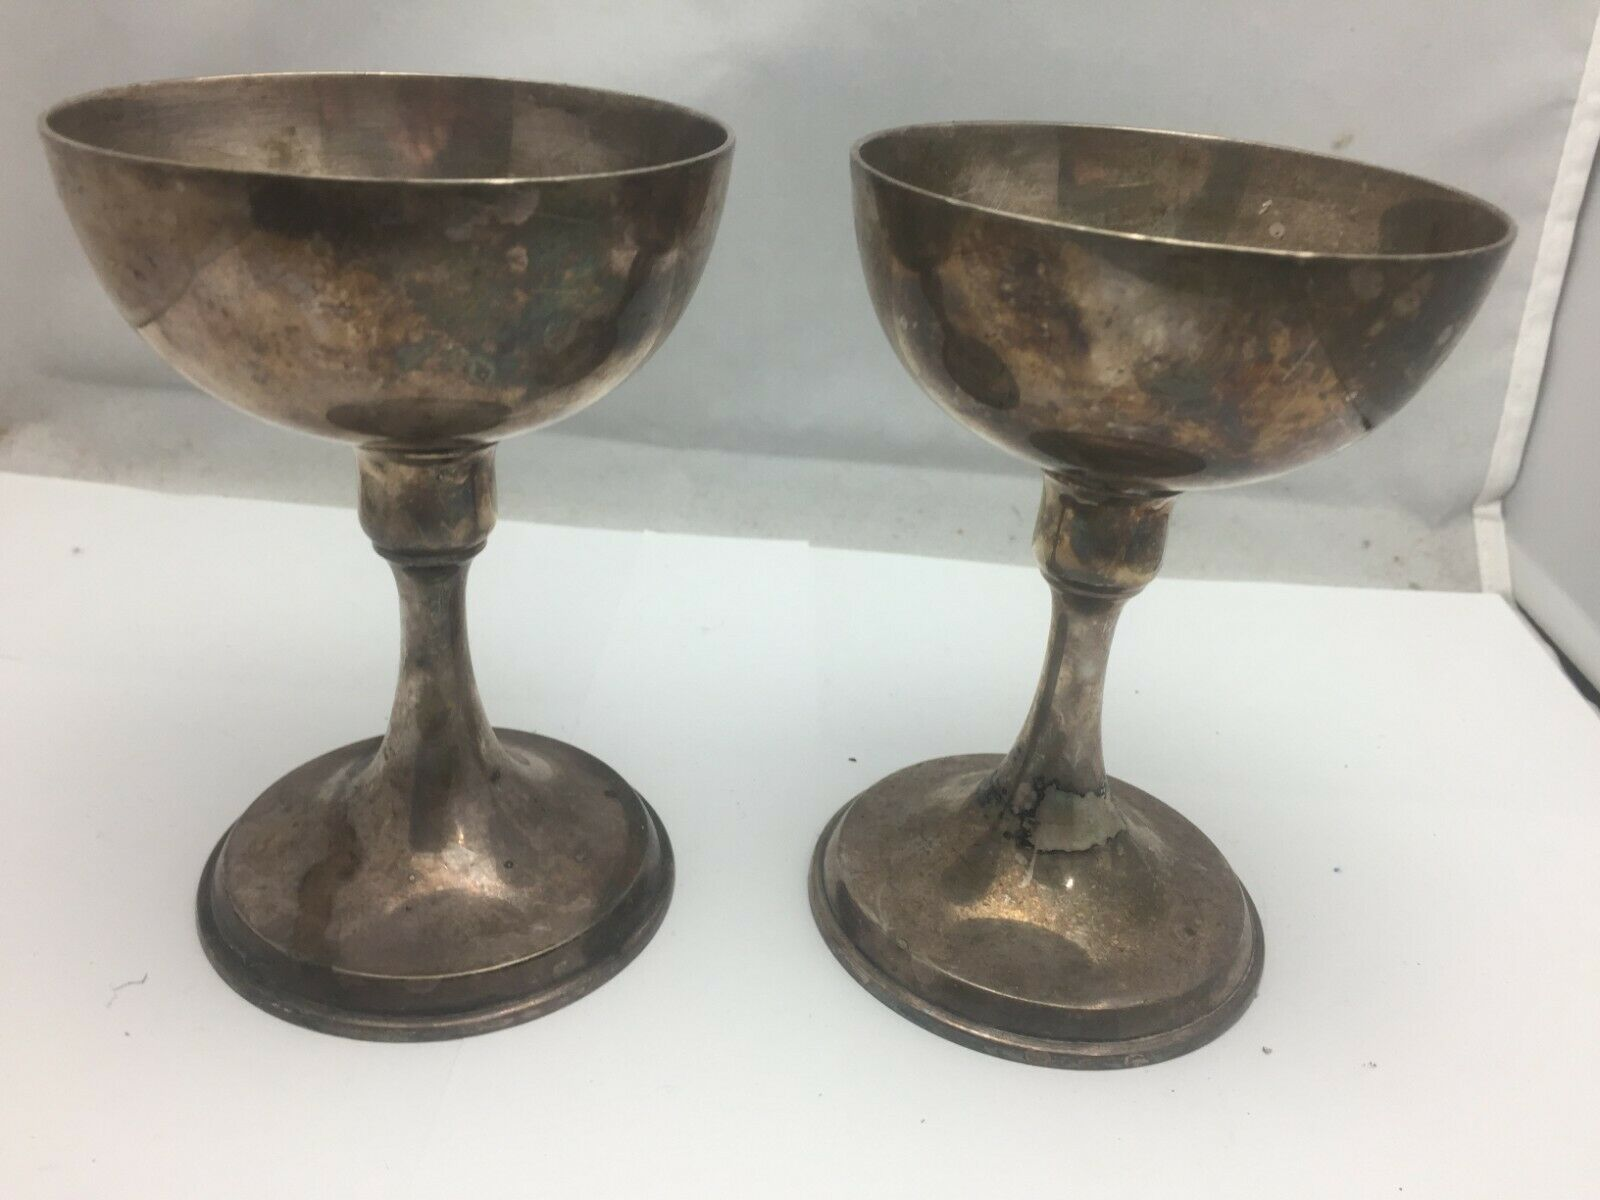 Primary image for Vintage Art Krupp Berndorf candlestick set of 2